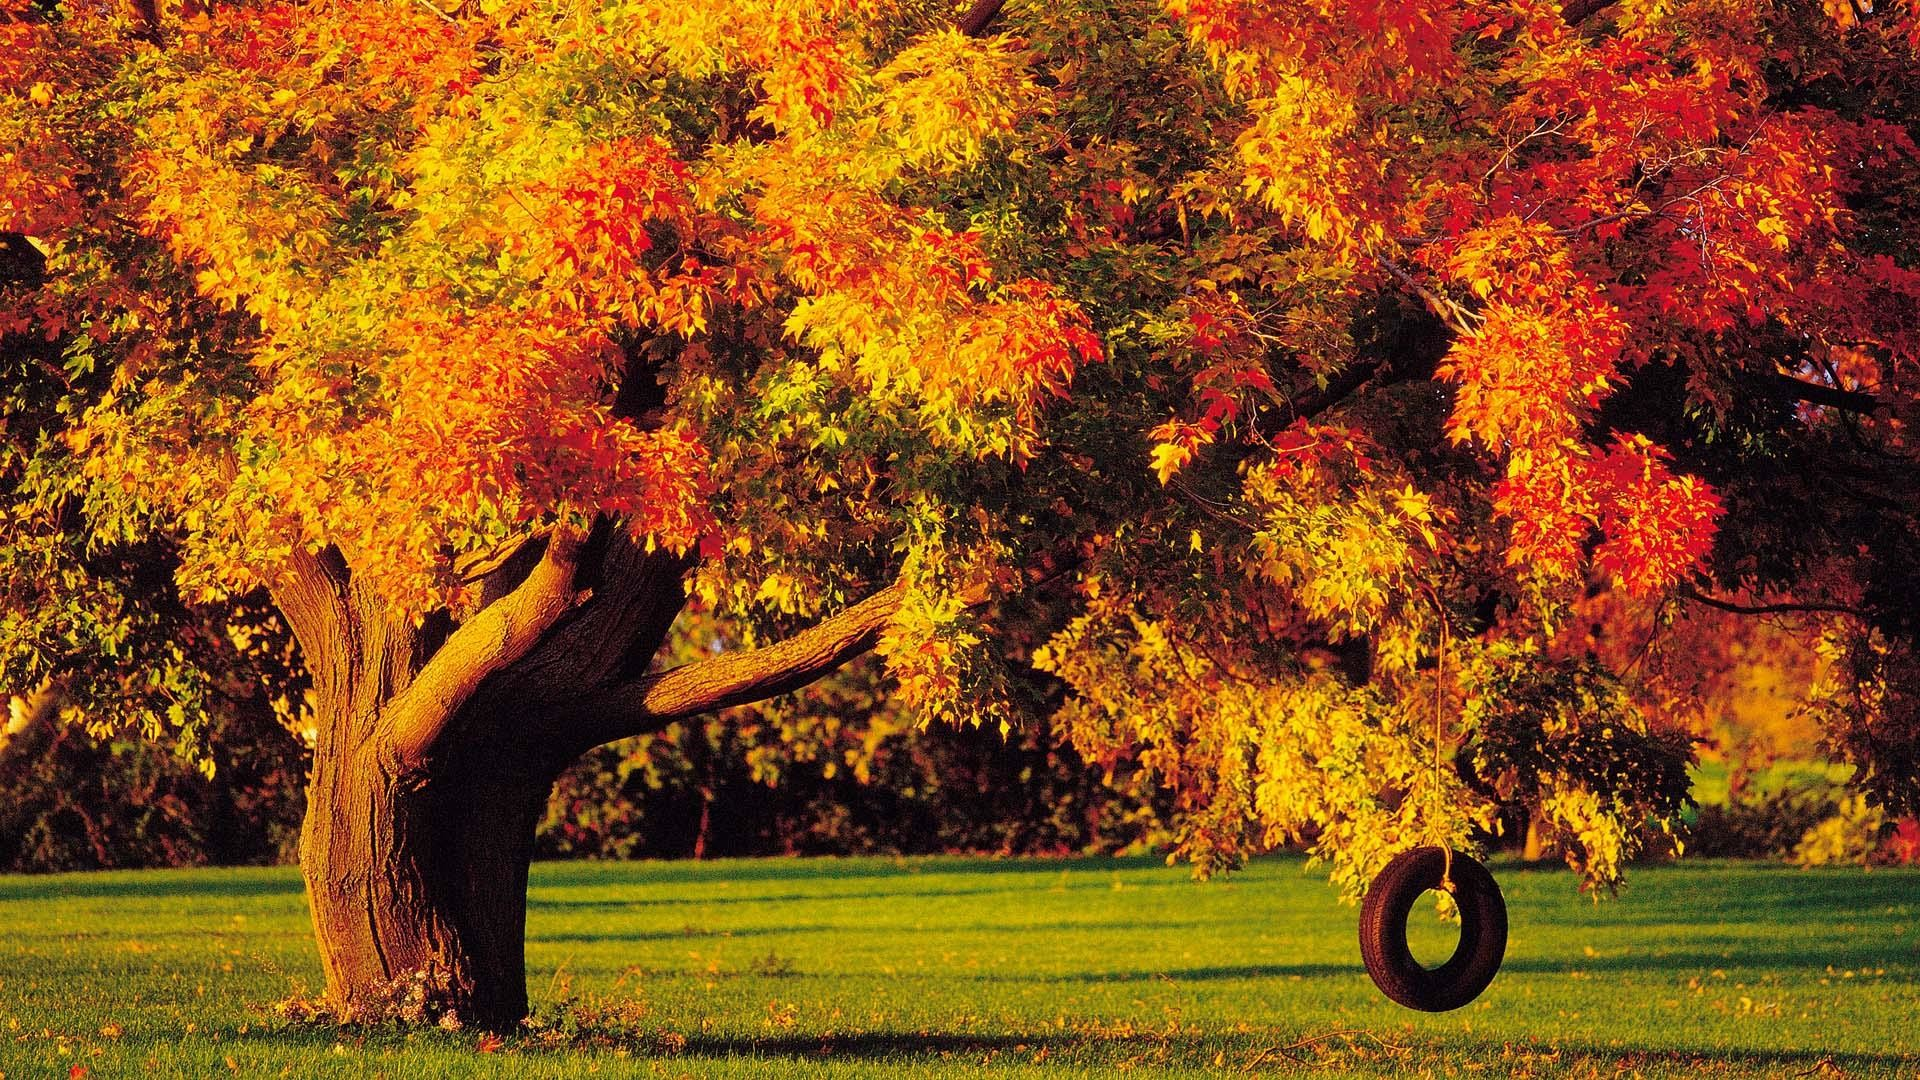 Fall Themed Iphone Wallpapers Fall Foliage Wallpaper For Desktop 183 ①